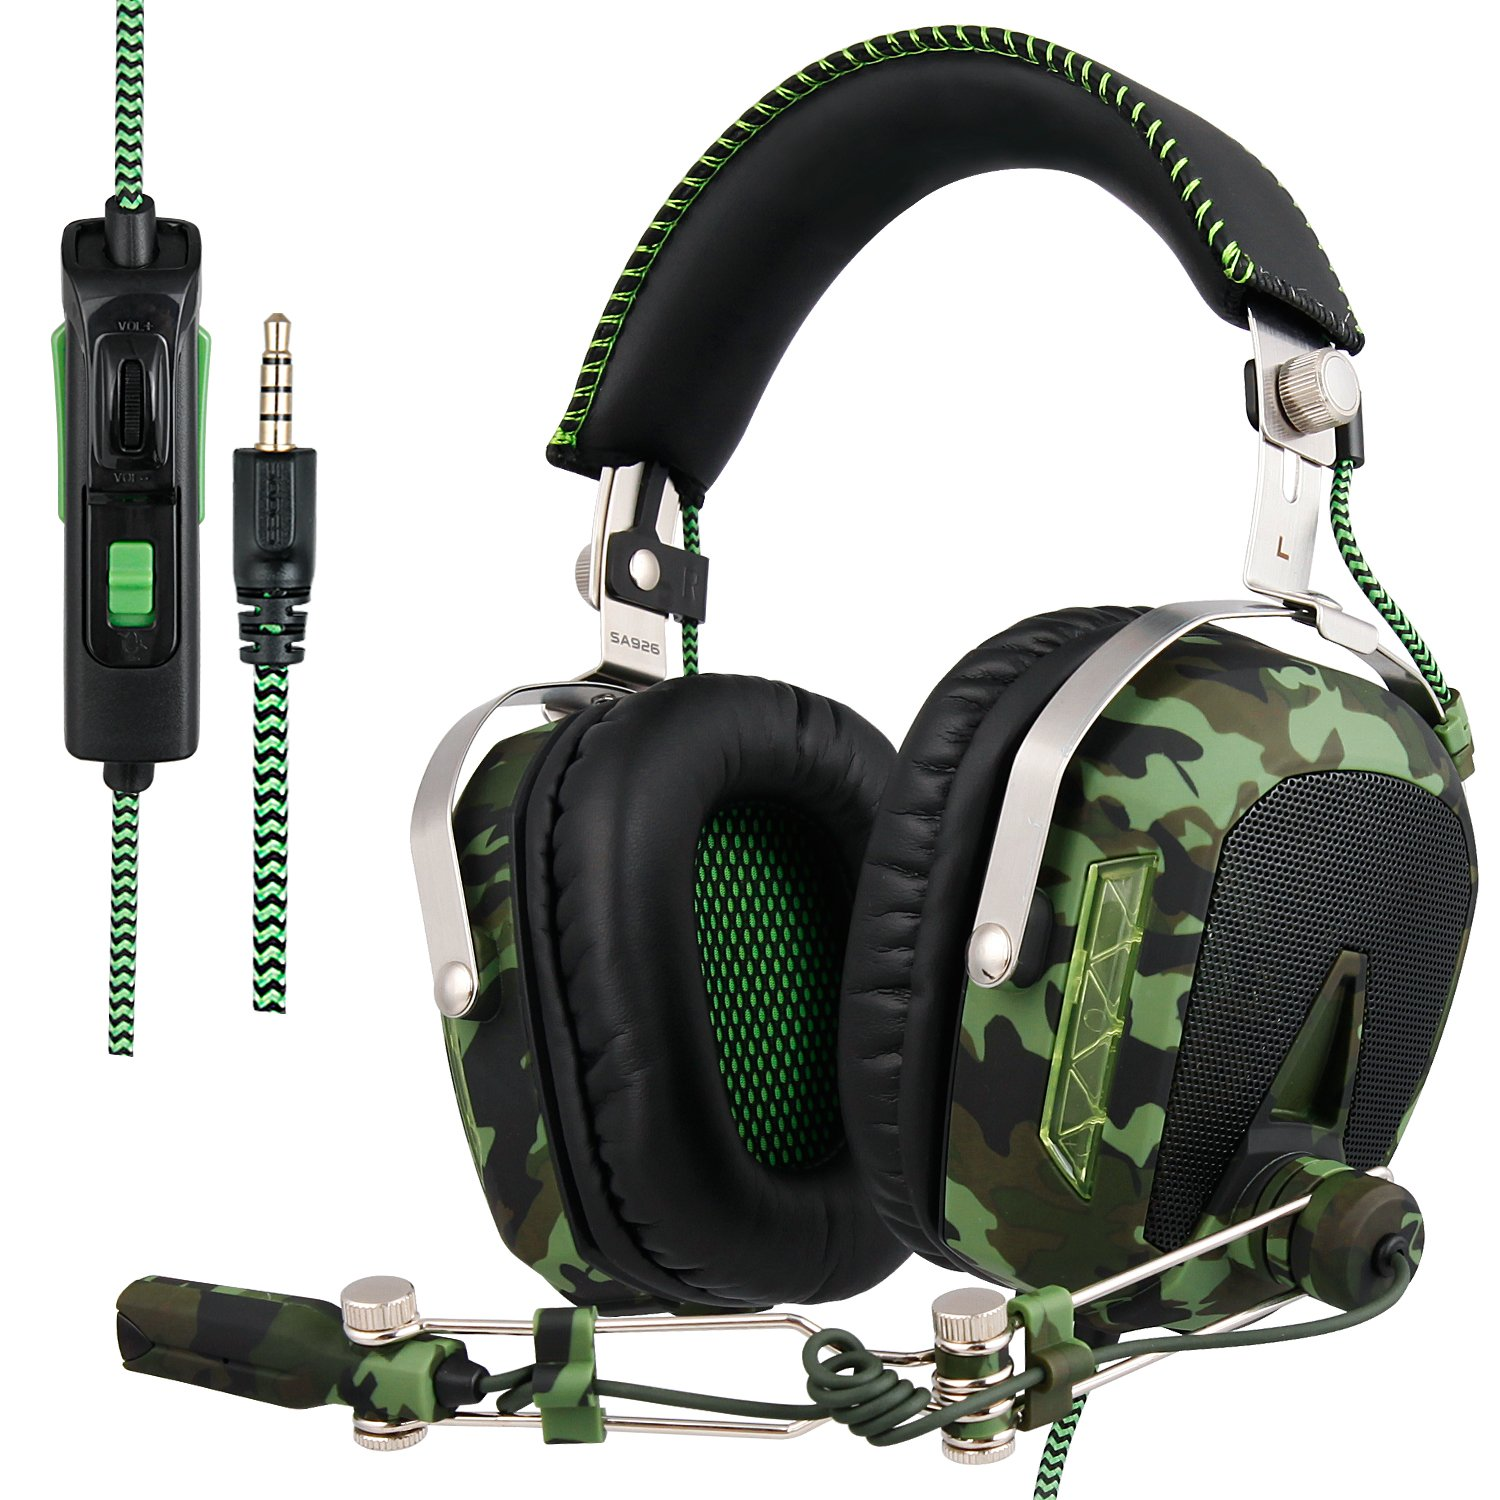 Sades SA926 Gaming Headset Stereo Wired Over Ear Headphones with Microphone for PC PS3 PS4 Xbox One Xbox 360 Phone Mac Laptop by EMMETTS